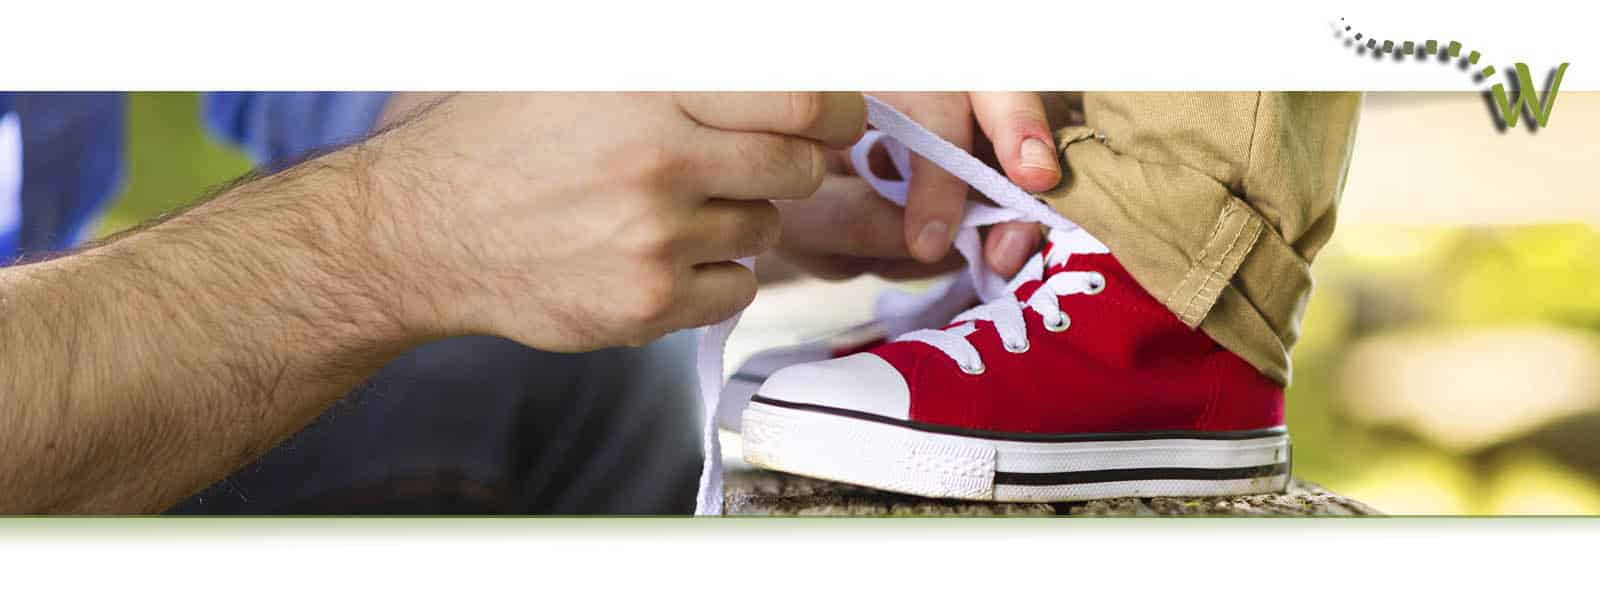 Man tying red shoe